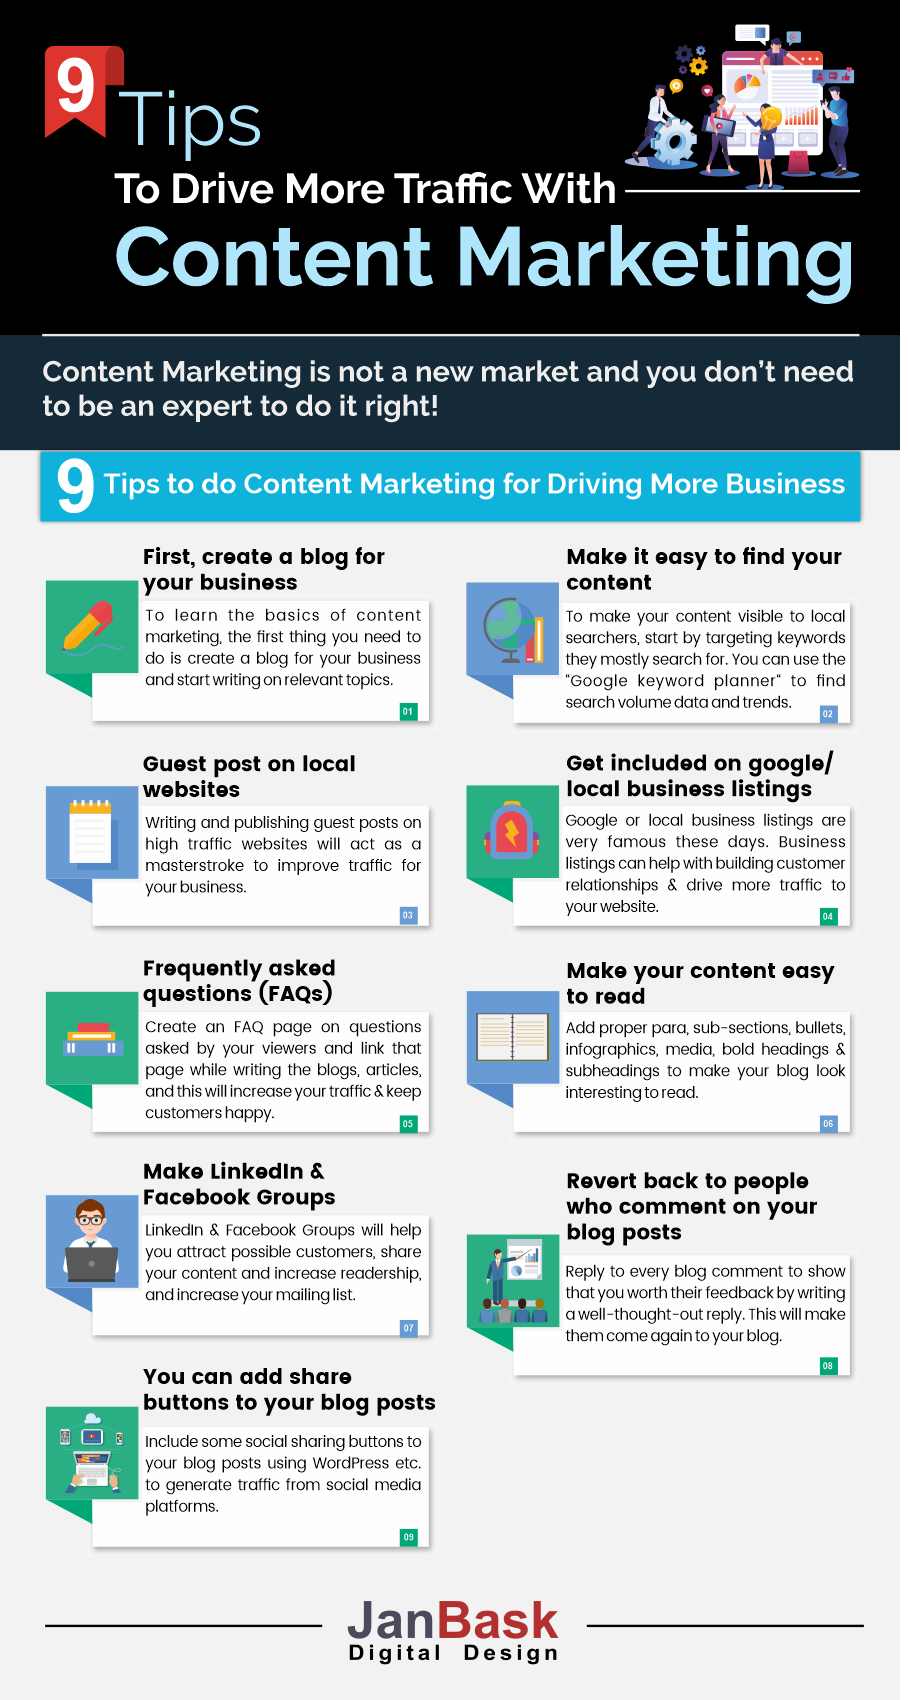 Tips to do Content Marketing for Driving More Business